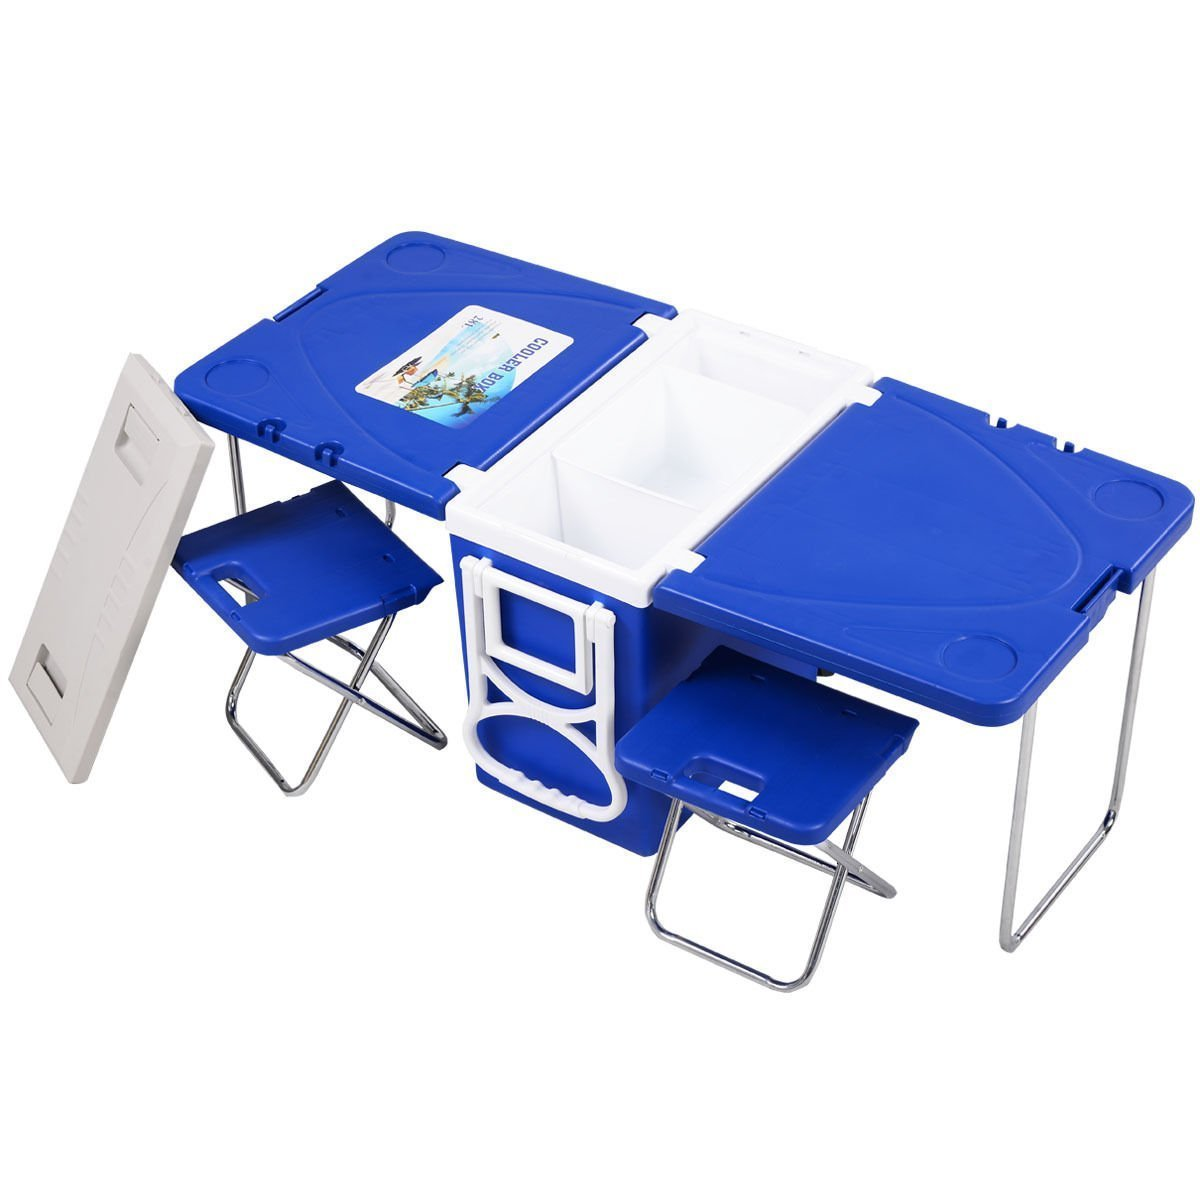 Amazon.com: Giantex Multi Function Rolling Cooler Picnic Camping Outdoor W/  Table U0026 2 Chairs Blue: Kitchen U0026 Dining